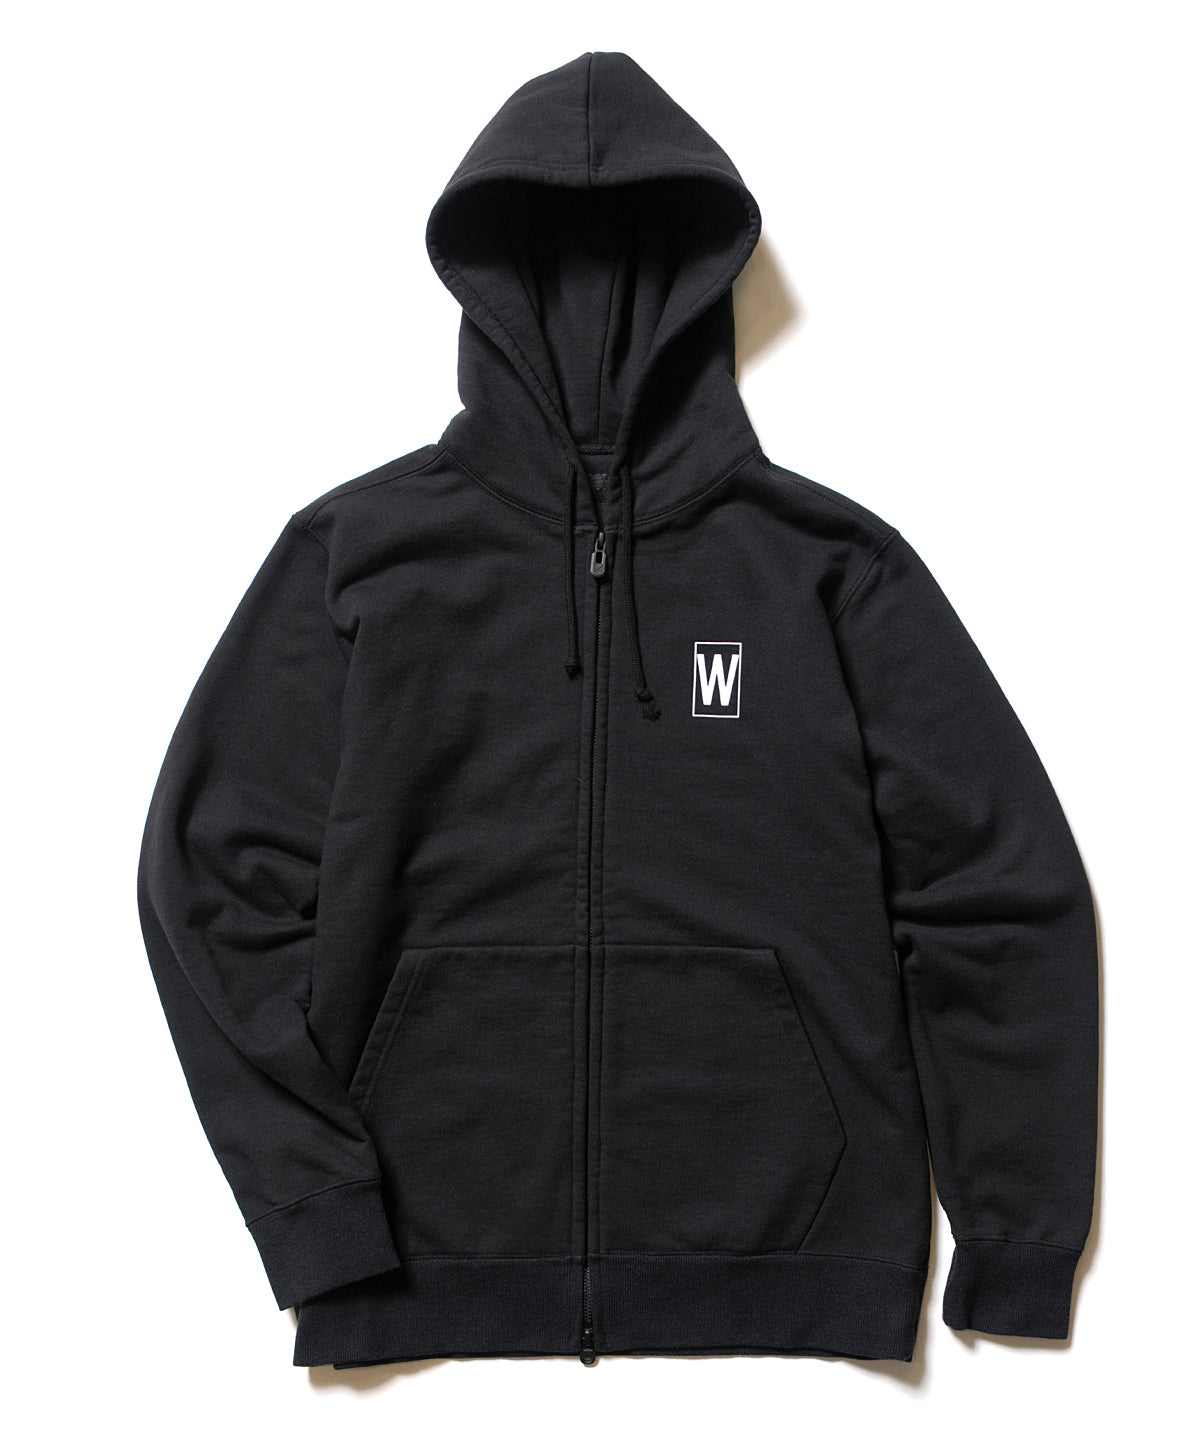 WHITE MOUNTAIN EXPERIMENT ZIP UP SWEAT PARKA